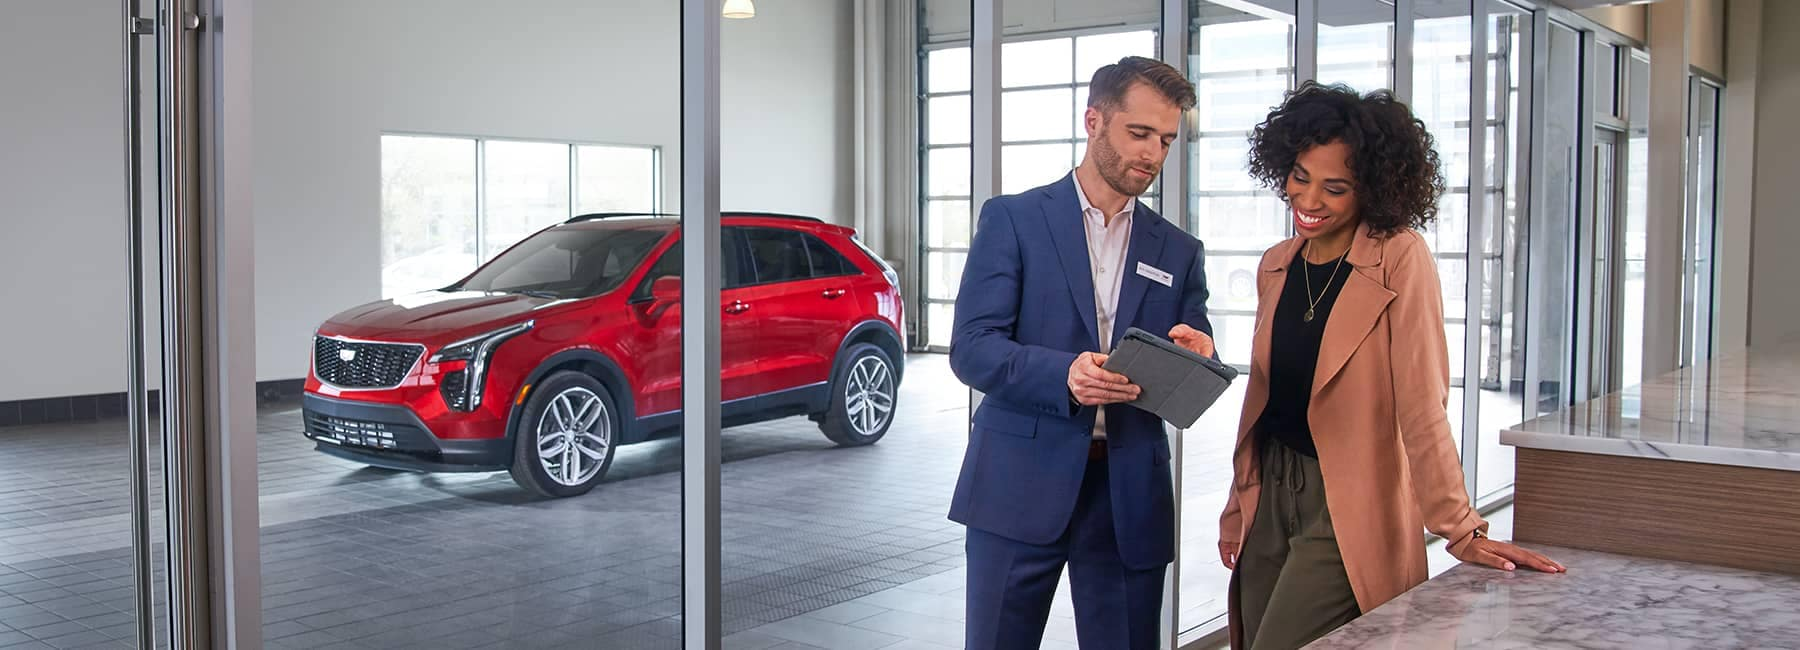 Sales person working with a customer in showroom